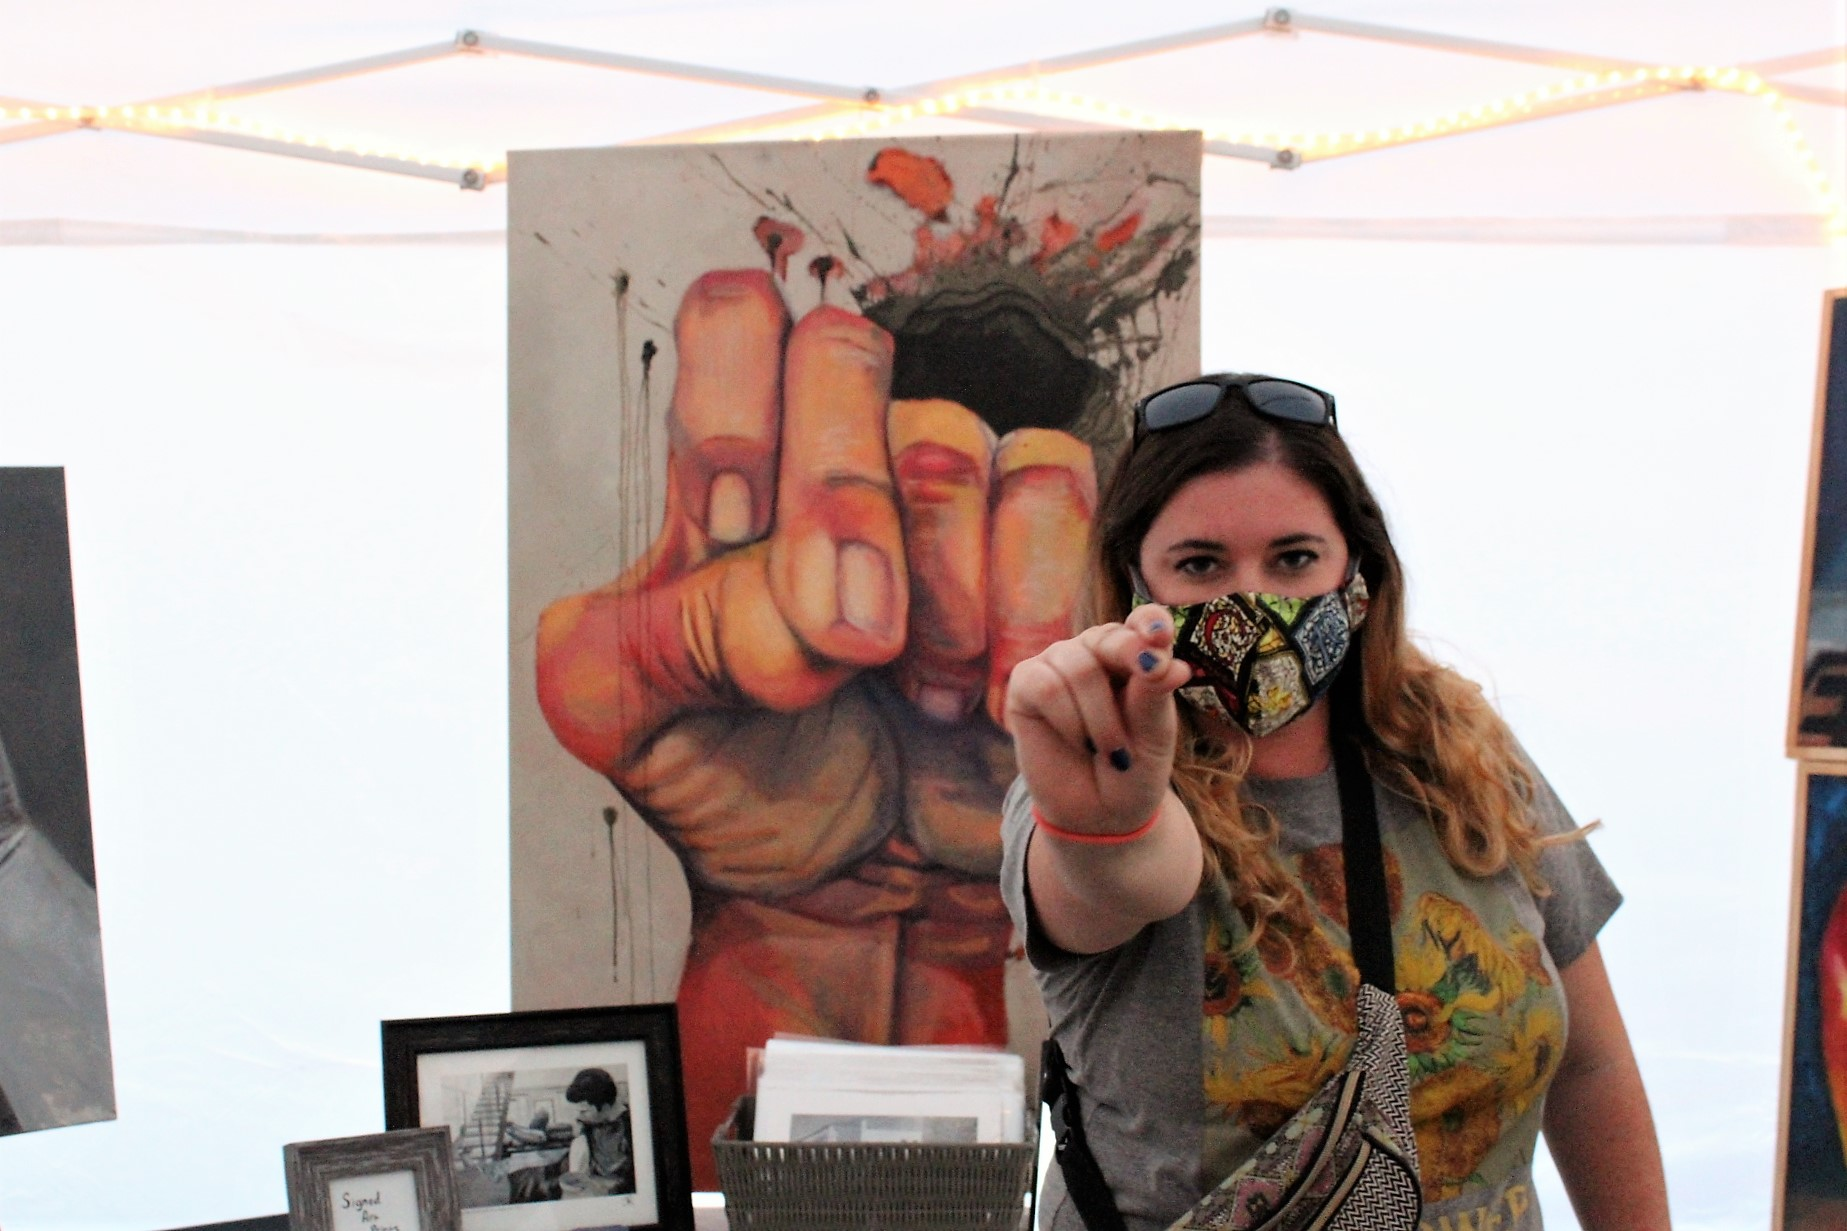 A woman with a face mask stands in front of a painting of a hand.